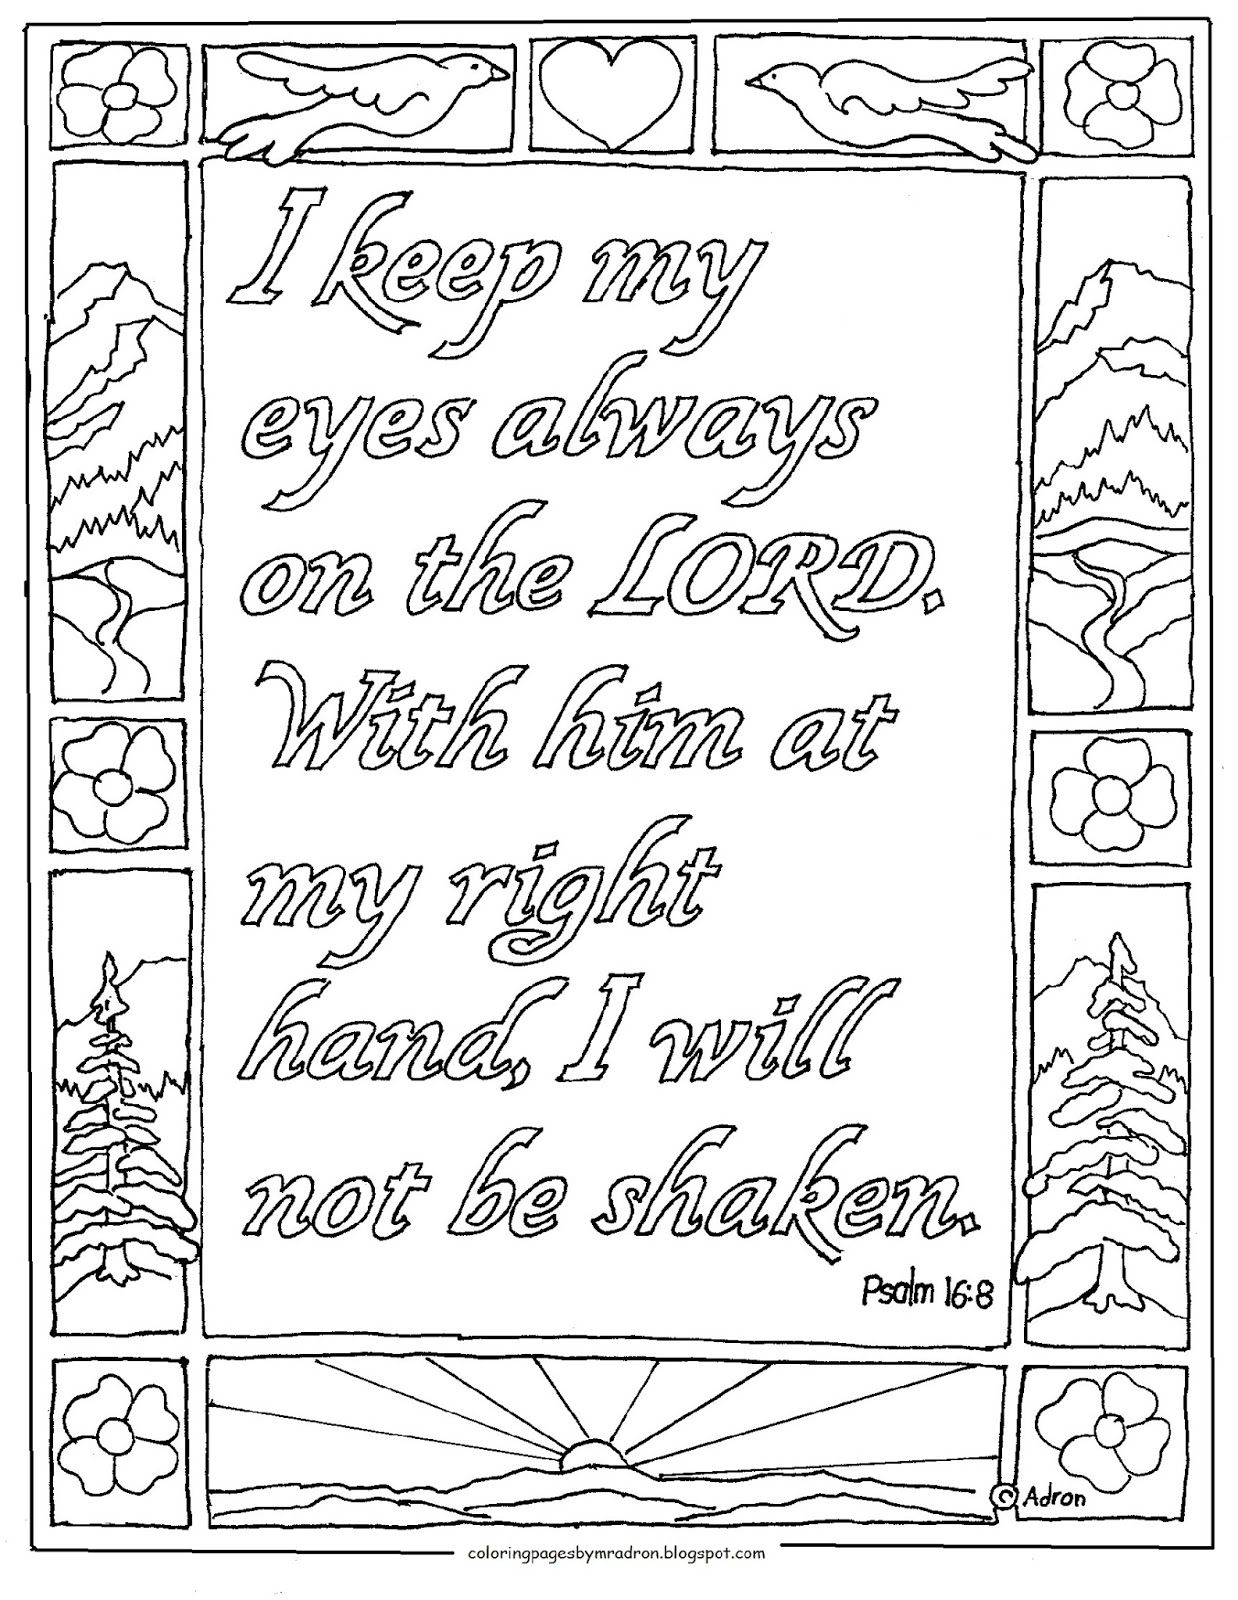 psalm 98 coloring page psalm 241 colouring sheet psalm 24 psalms coloring sheets coloring psalm 98 page